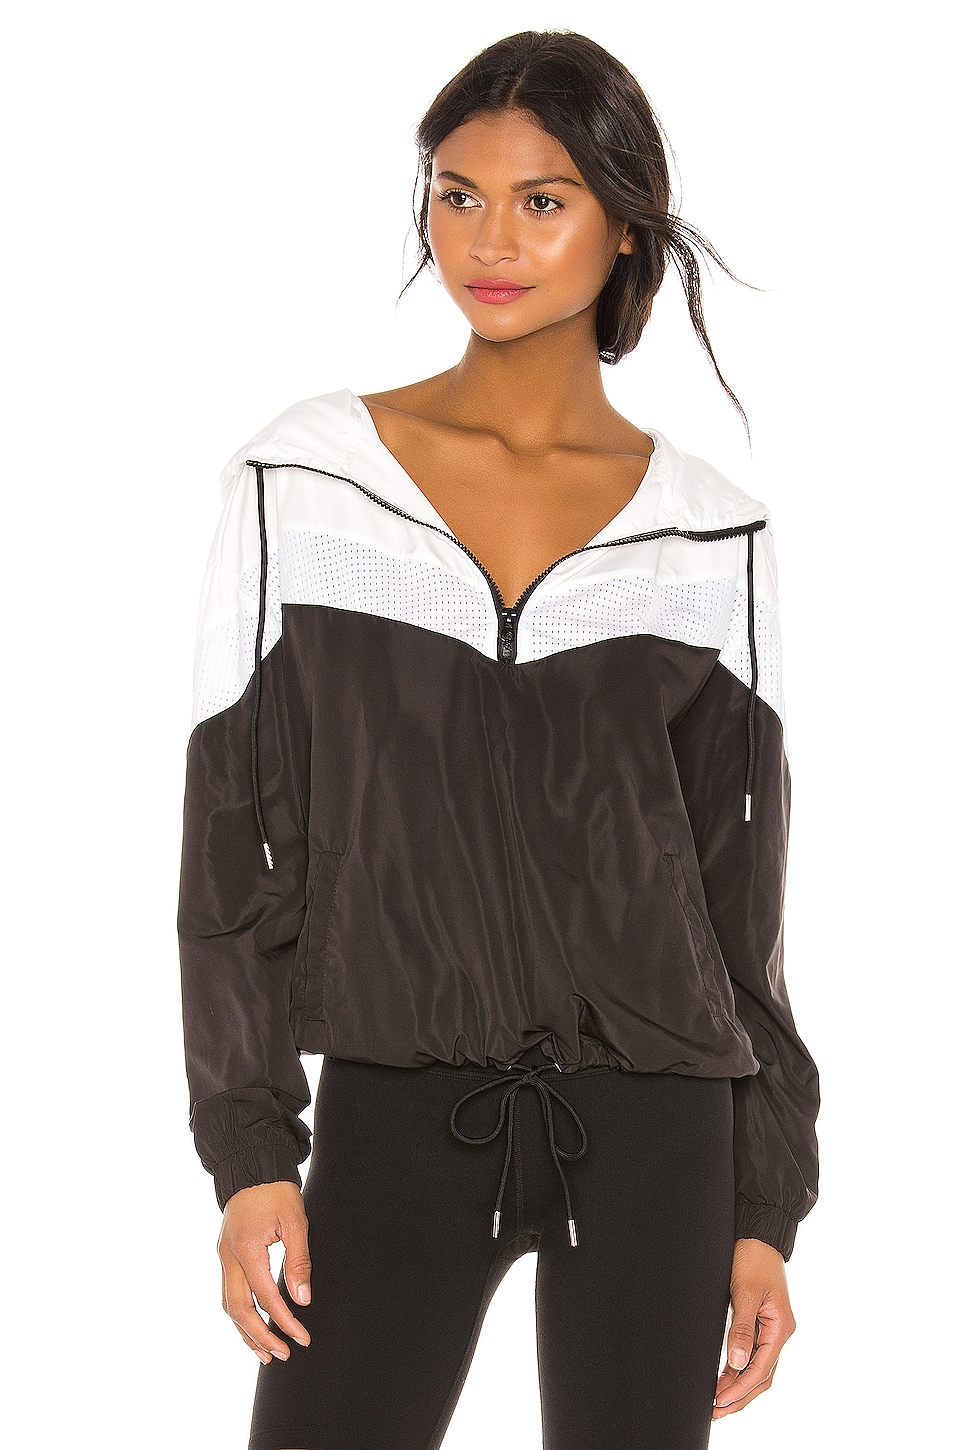 Chill by Will Val Windbreaker in Black & White Mesh